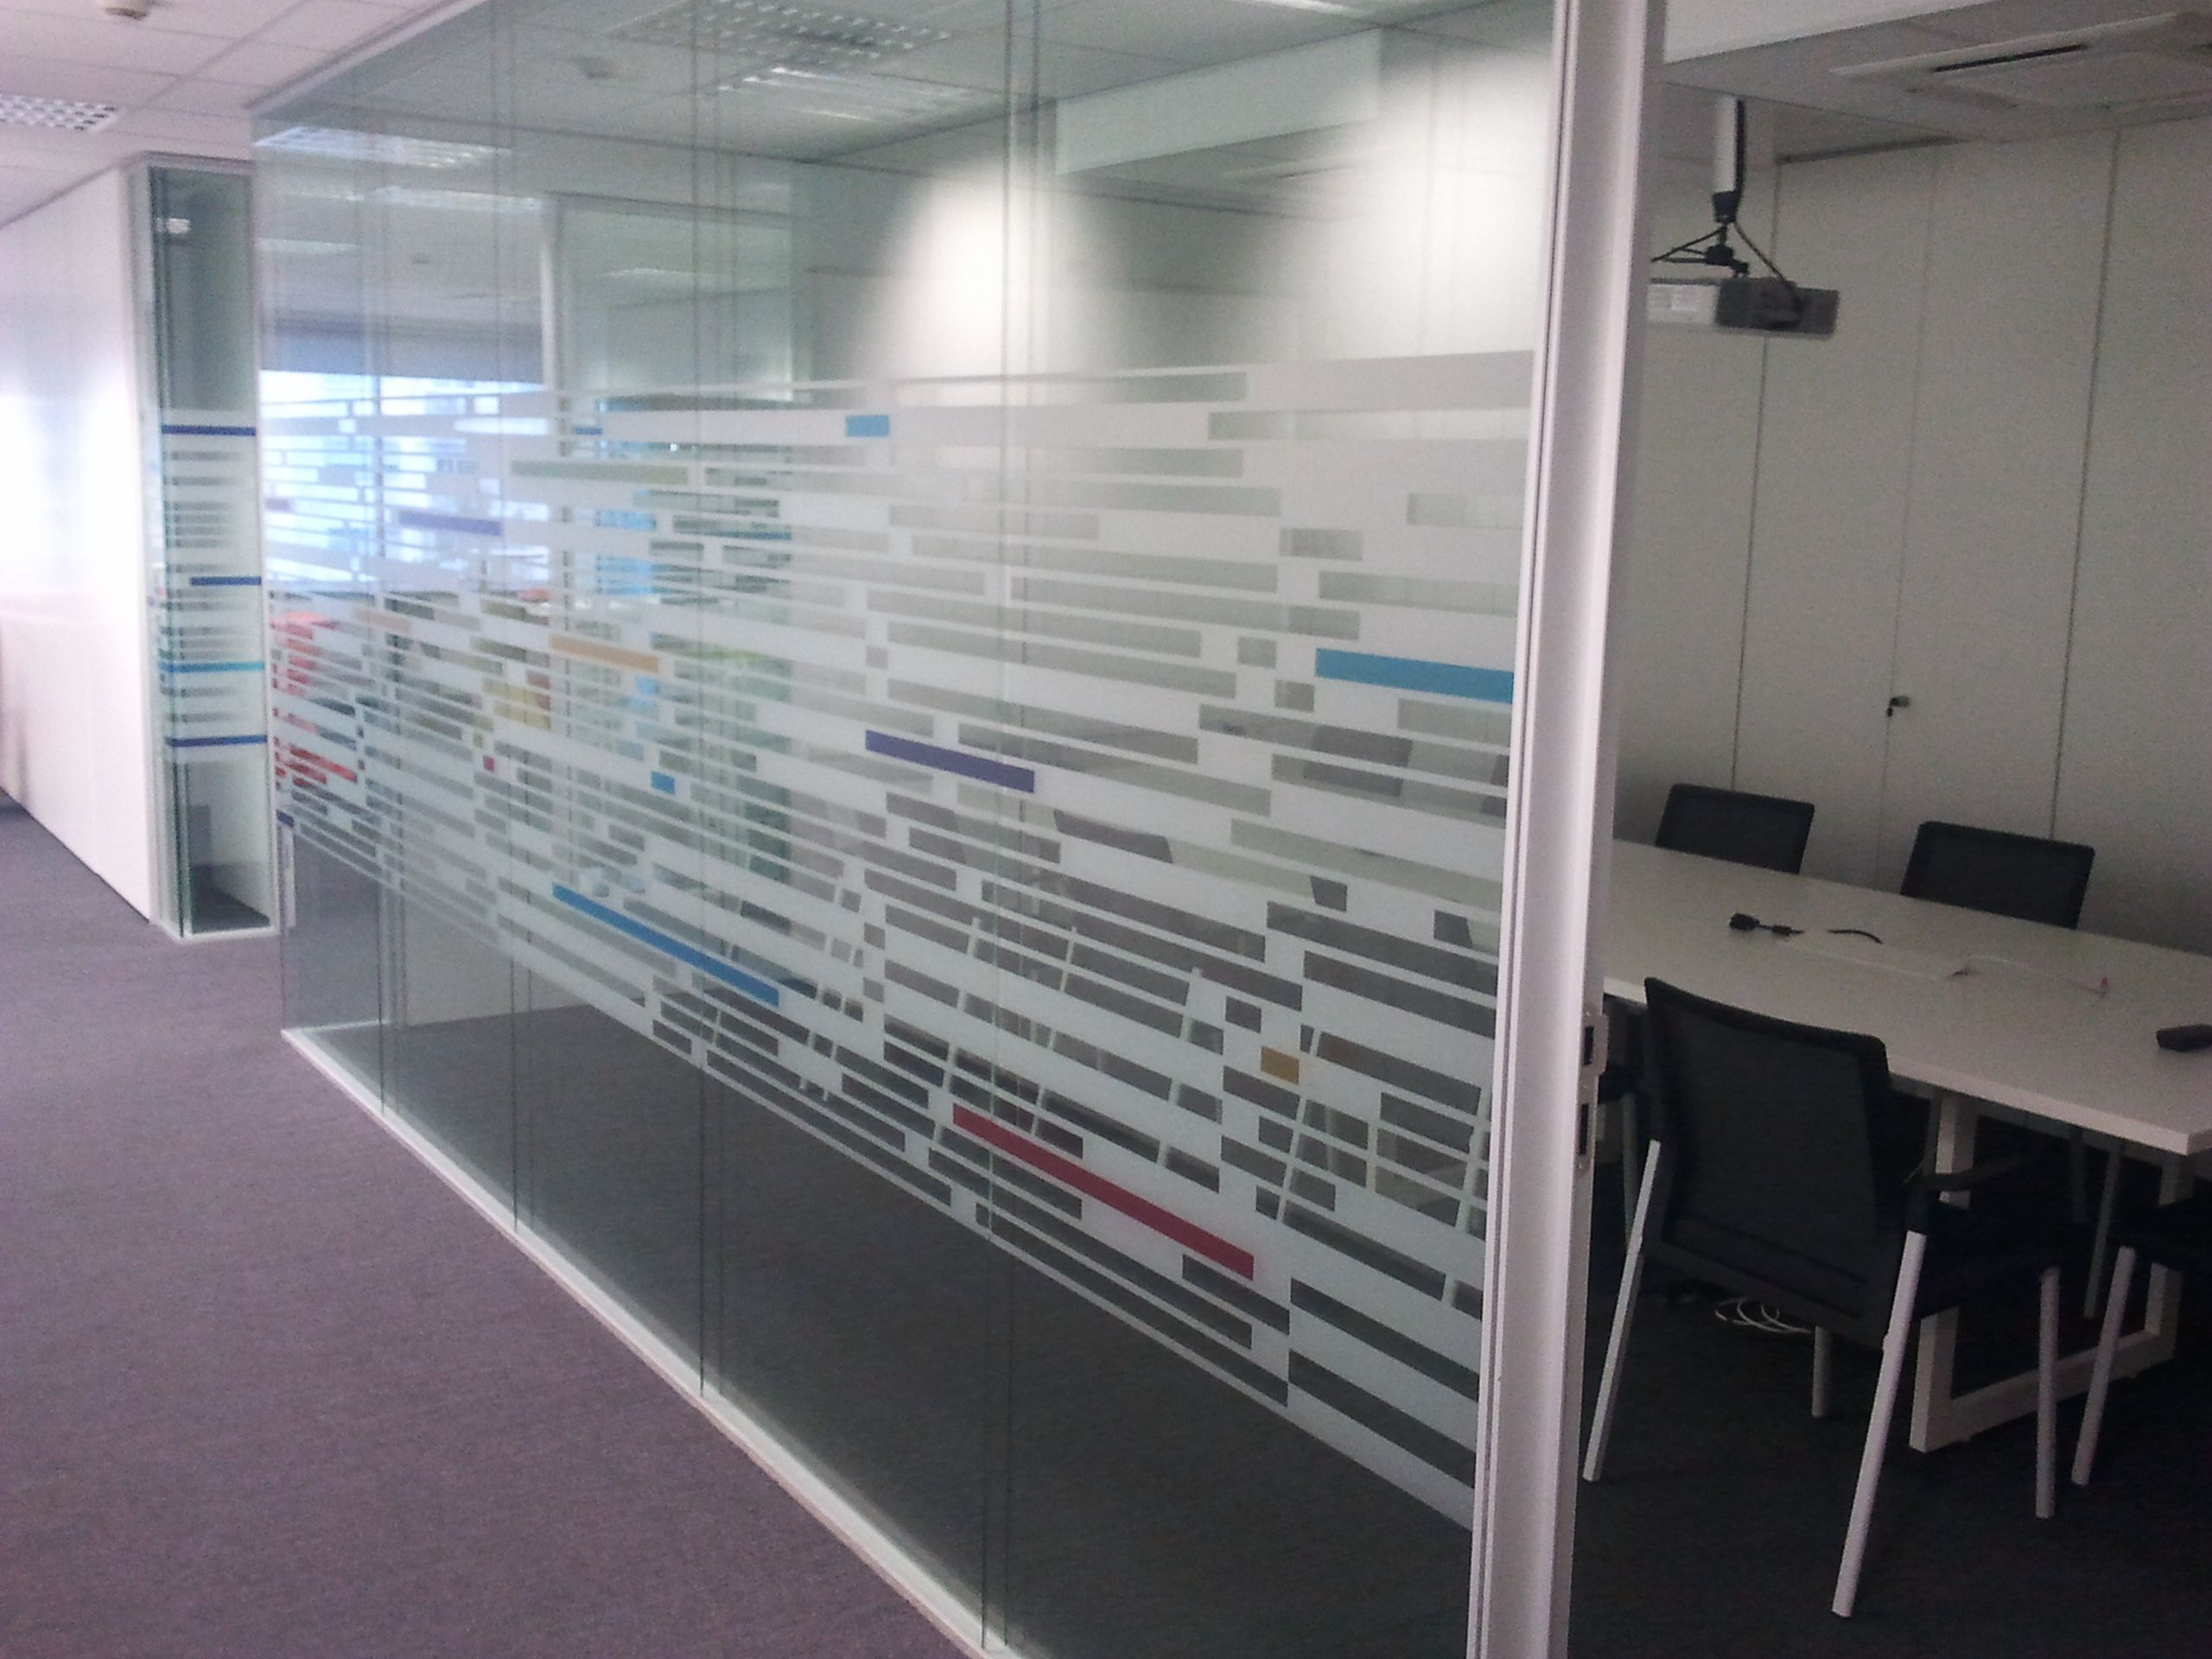 Vinilo Acido Floor Graphicsglass Doorsairportsofficesglazed Doors